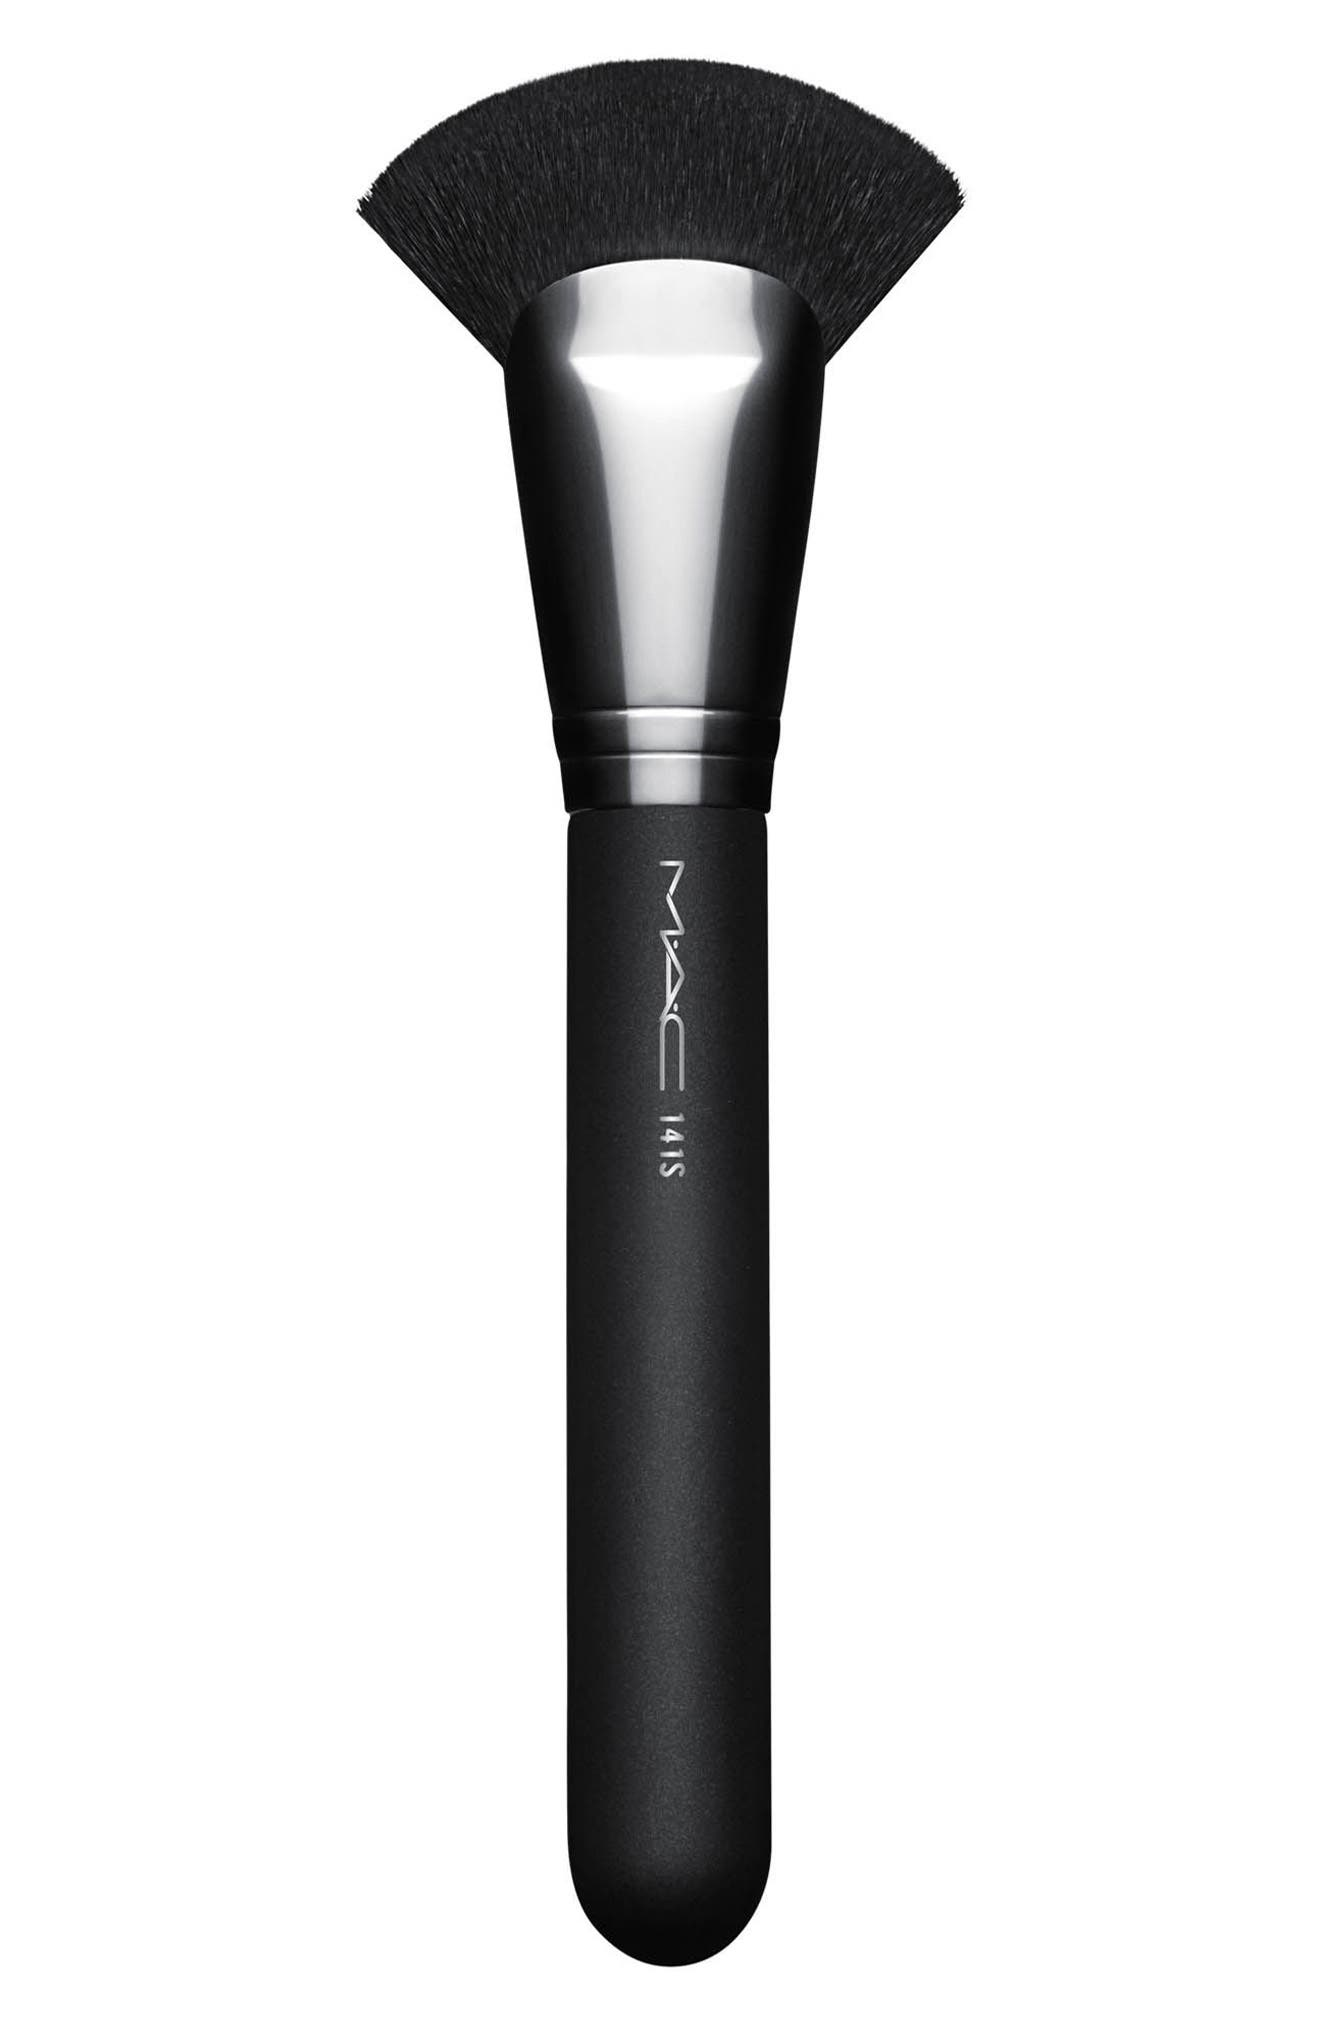 MAC 141 Synthetic Face Fan Brush,                             Main thumbnail 1, color,                             NO COLOR